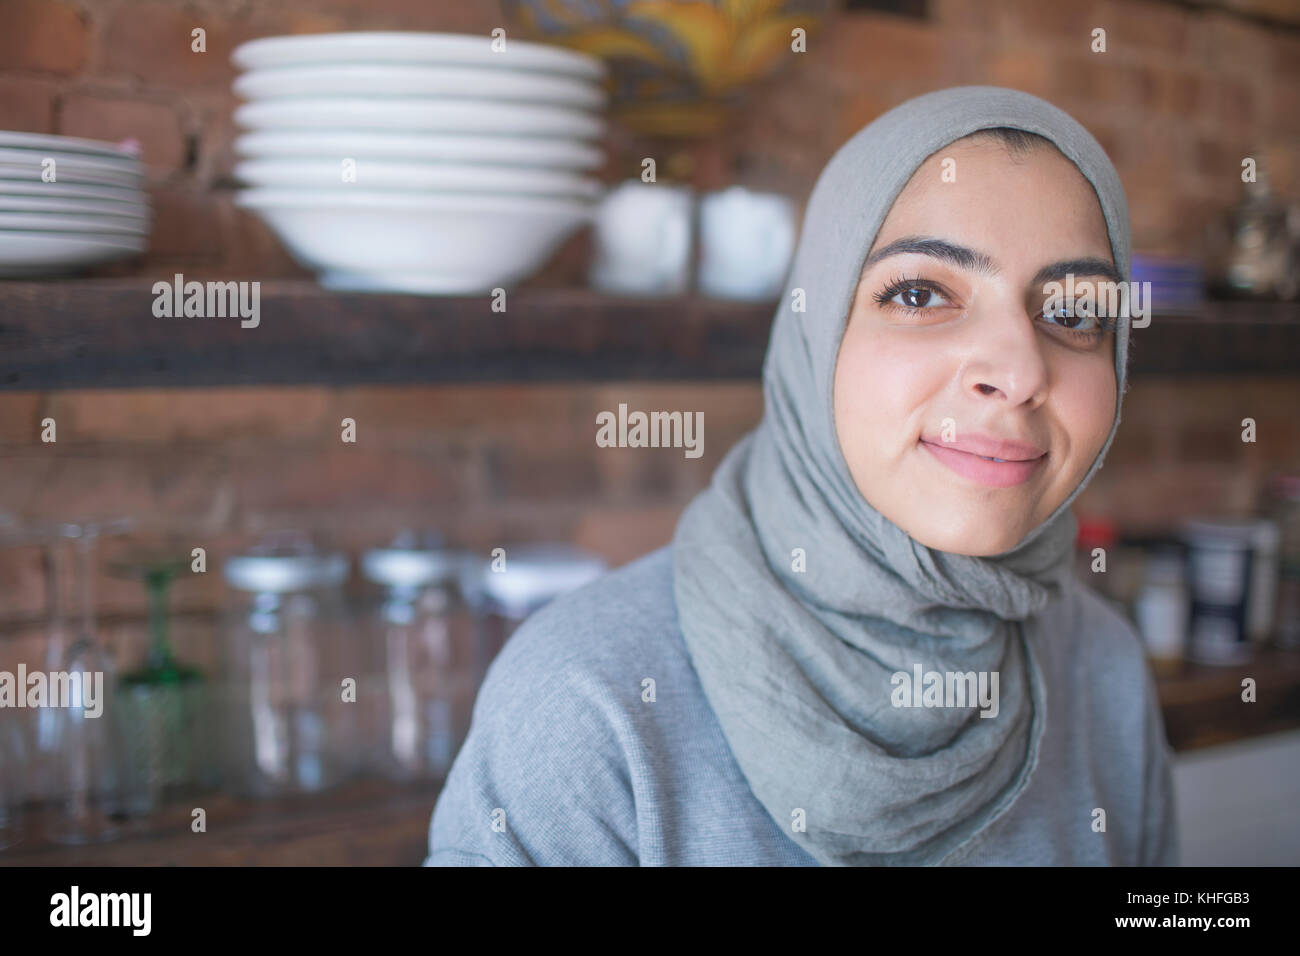 Muslim businesswoman wearing a hijab in her kitchen - Stock Image